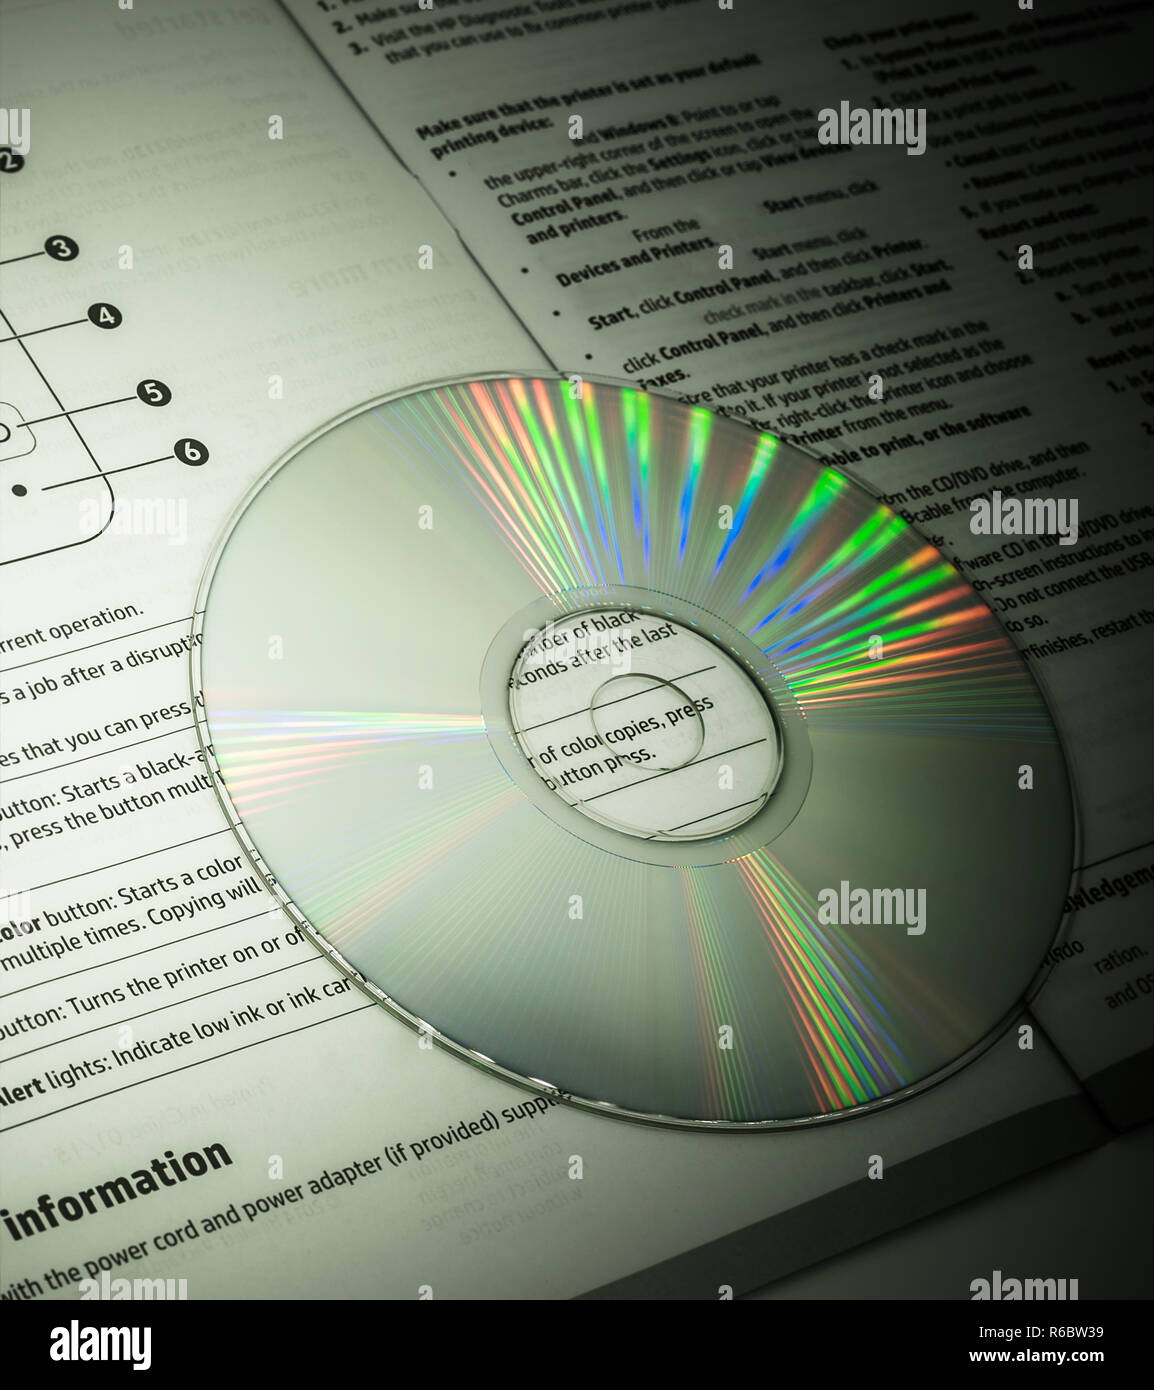 cd with its paper instruction - Stock Image